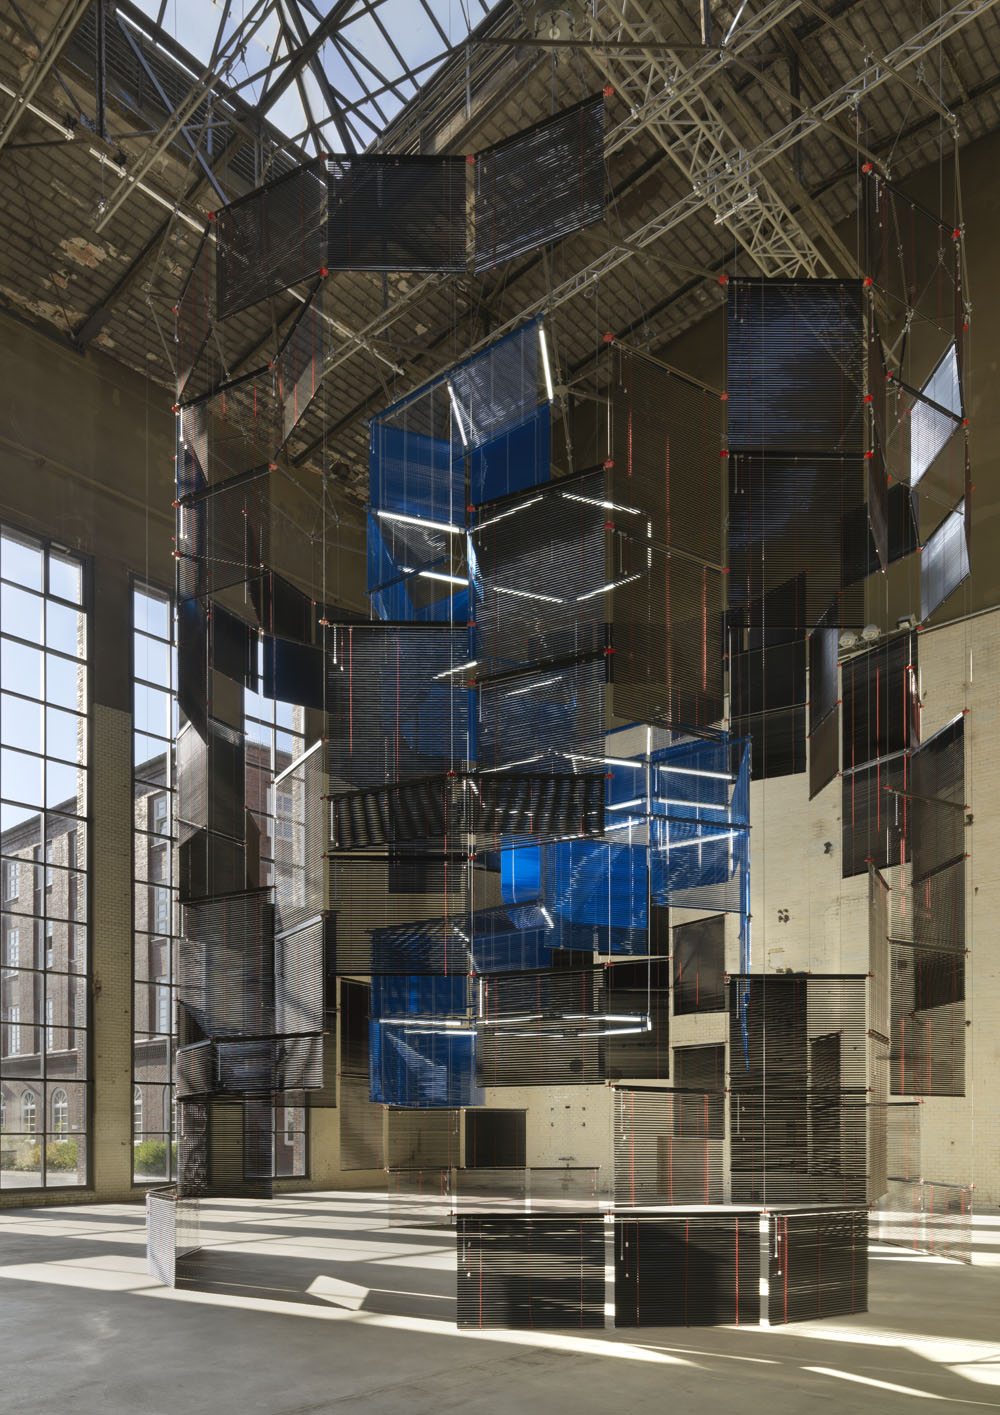 Haegue Yang,  Silo of Silence – Clicked Core , Installationsansicht KINDL – Zentrum für Zeitgenössische Kunst, Berlin 2017, Courtesy die Künstlerin, Foto: Jens Ziehe